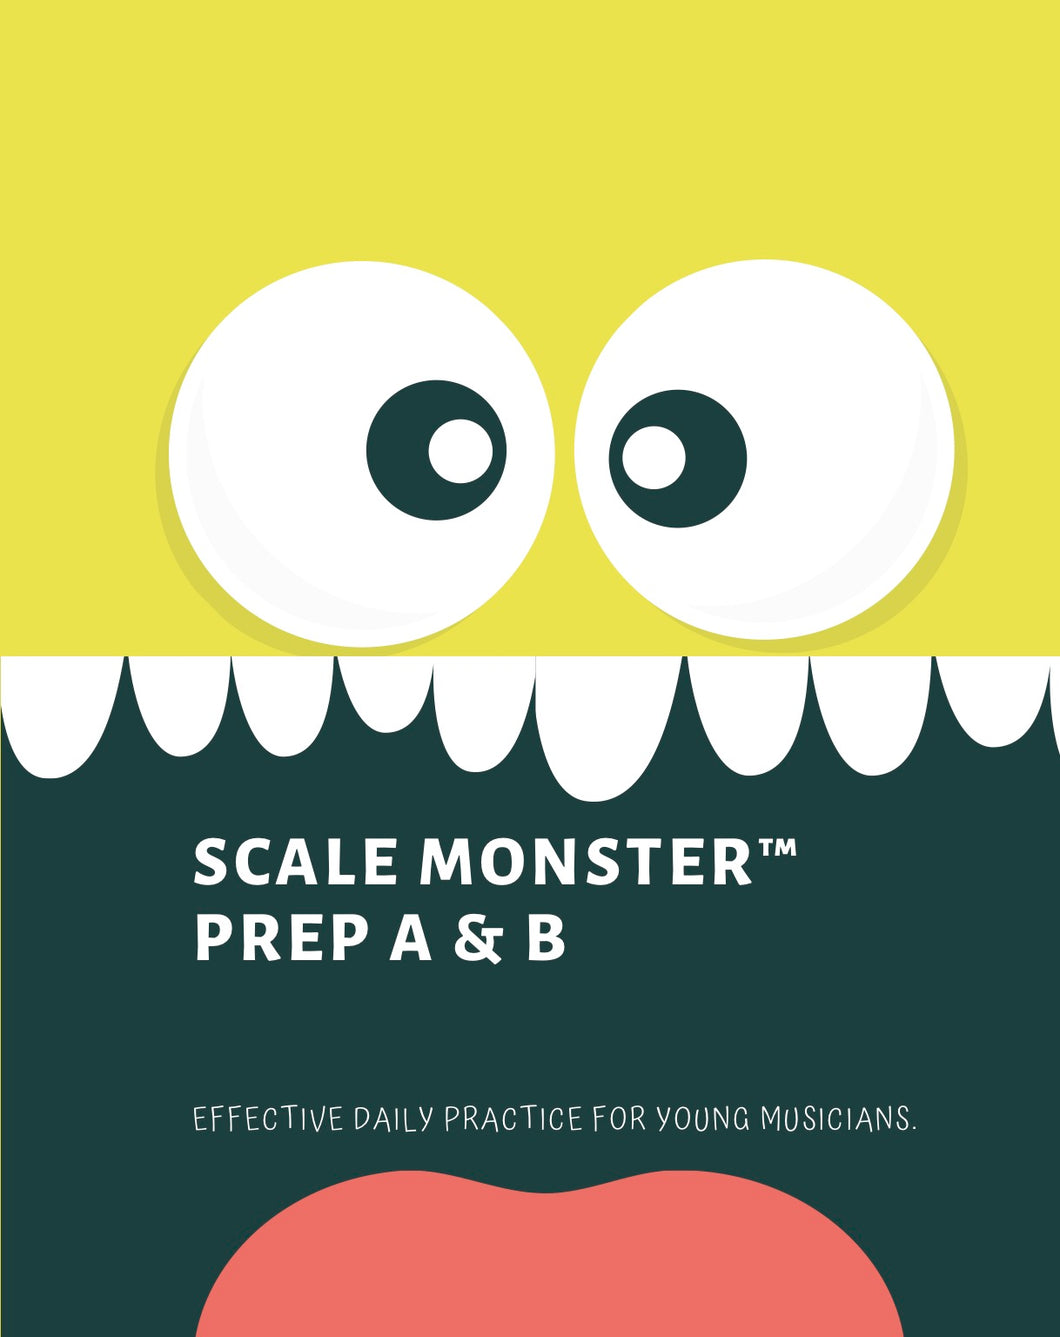 Scale Monster Prep A and B